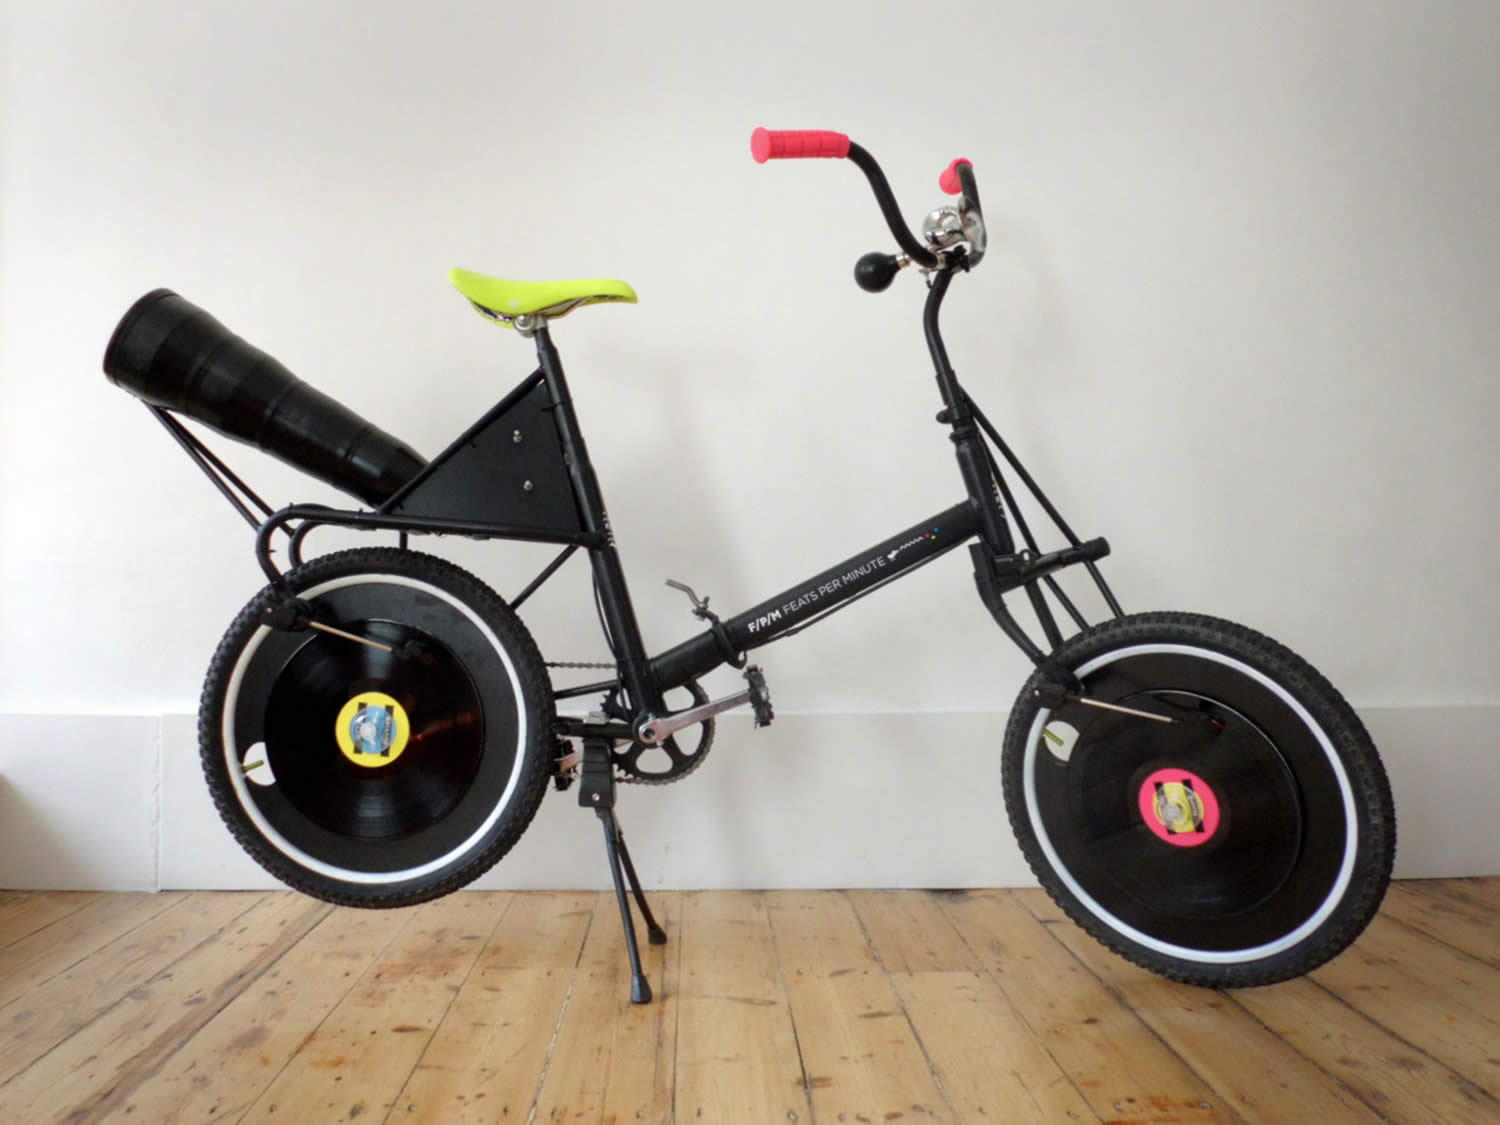 side view, feats per minute, bmx with vinyl records